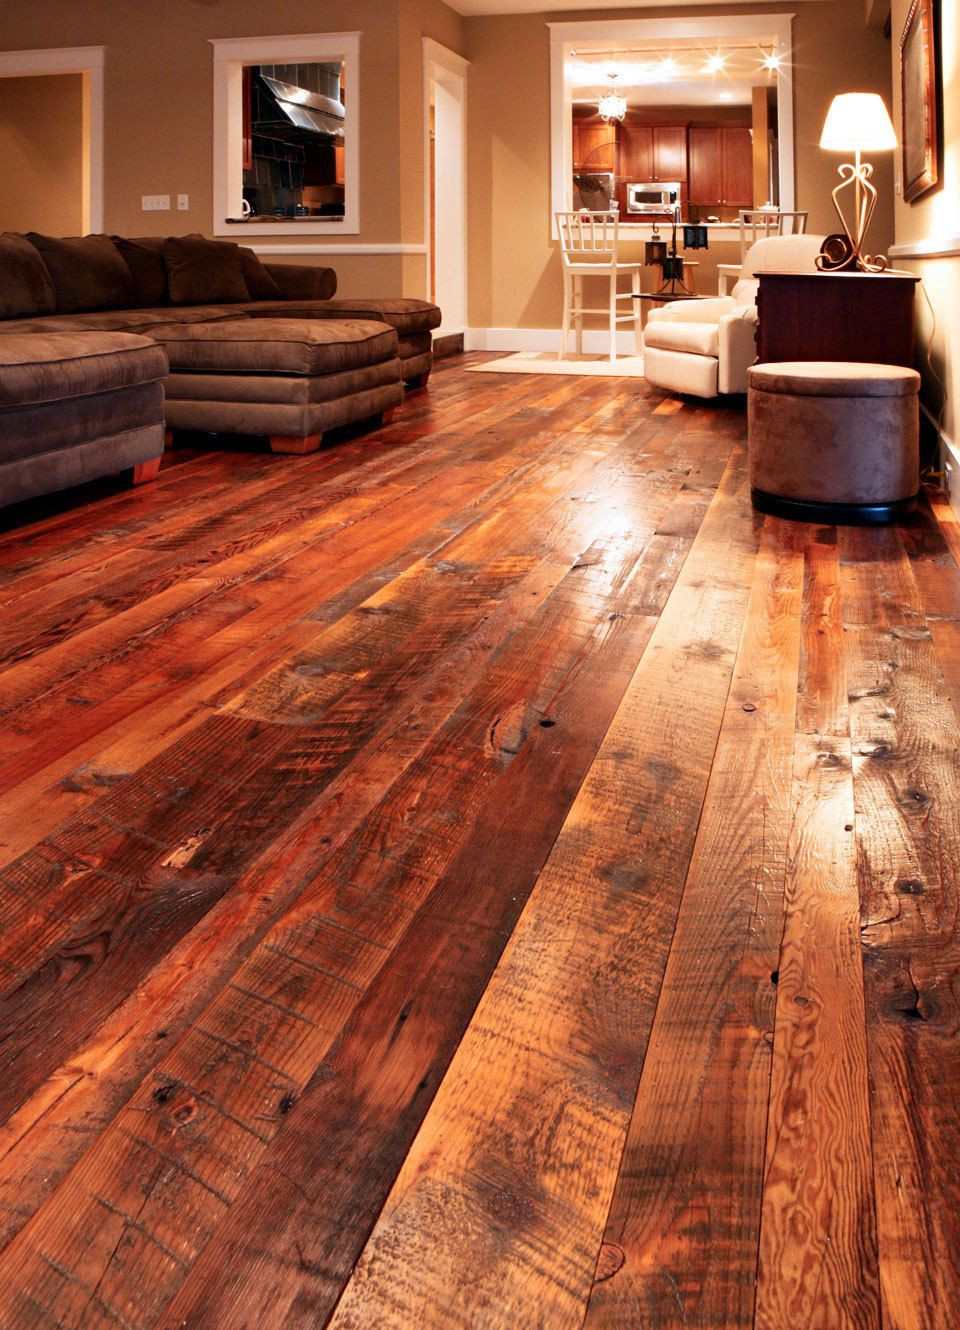 Unfinished Birch Hardwood Flooring Of Barn Wood Flooring for the Home Pinterest Domov Koupelna A with Barn Wood Flooring